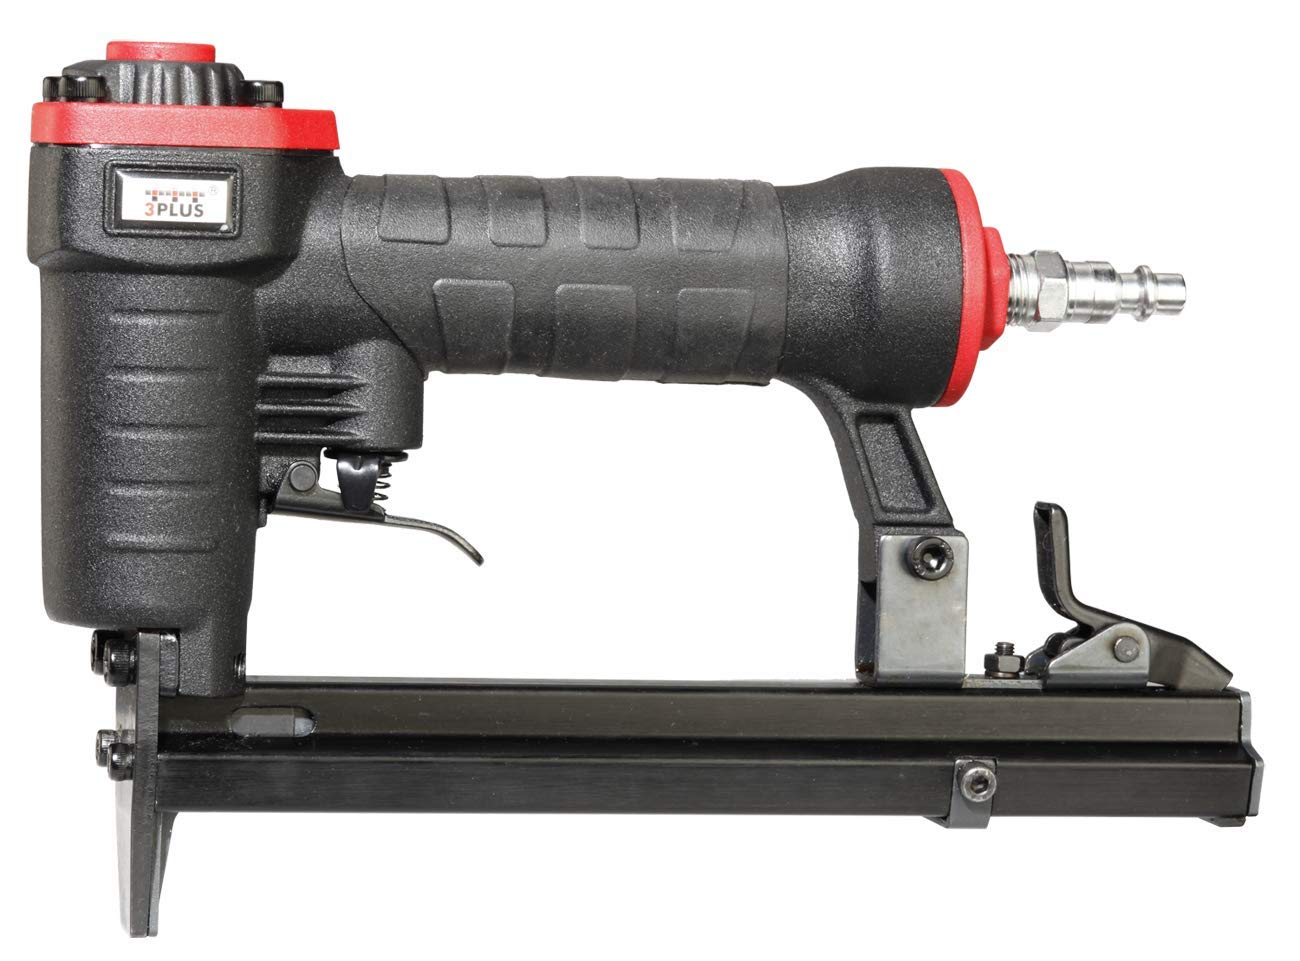 3PLUS H7116SP 22 Gauge 3/8-Inch Crown Pneumatic Upholstery Stapler, 1/4-Inch to 5/8-Inch by 3PLUS